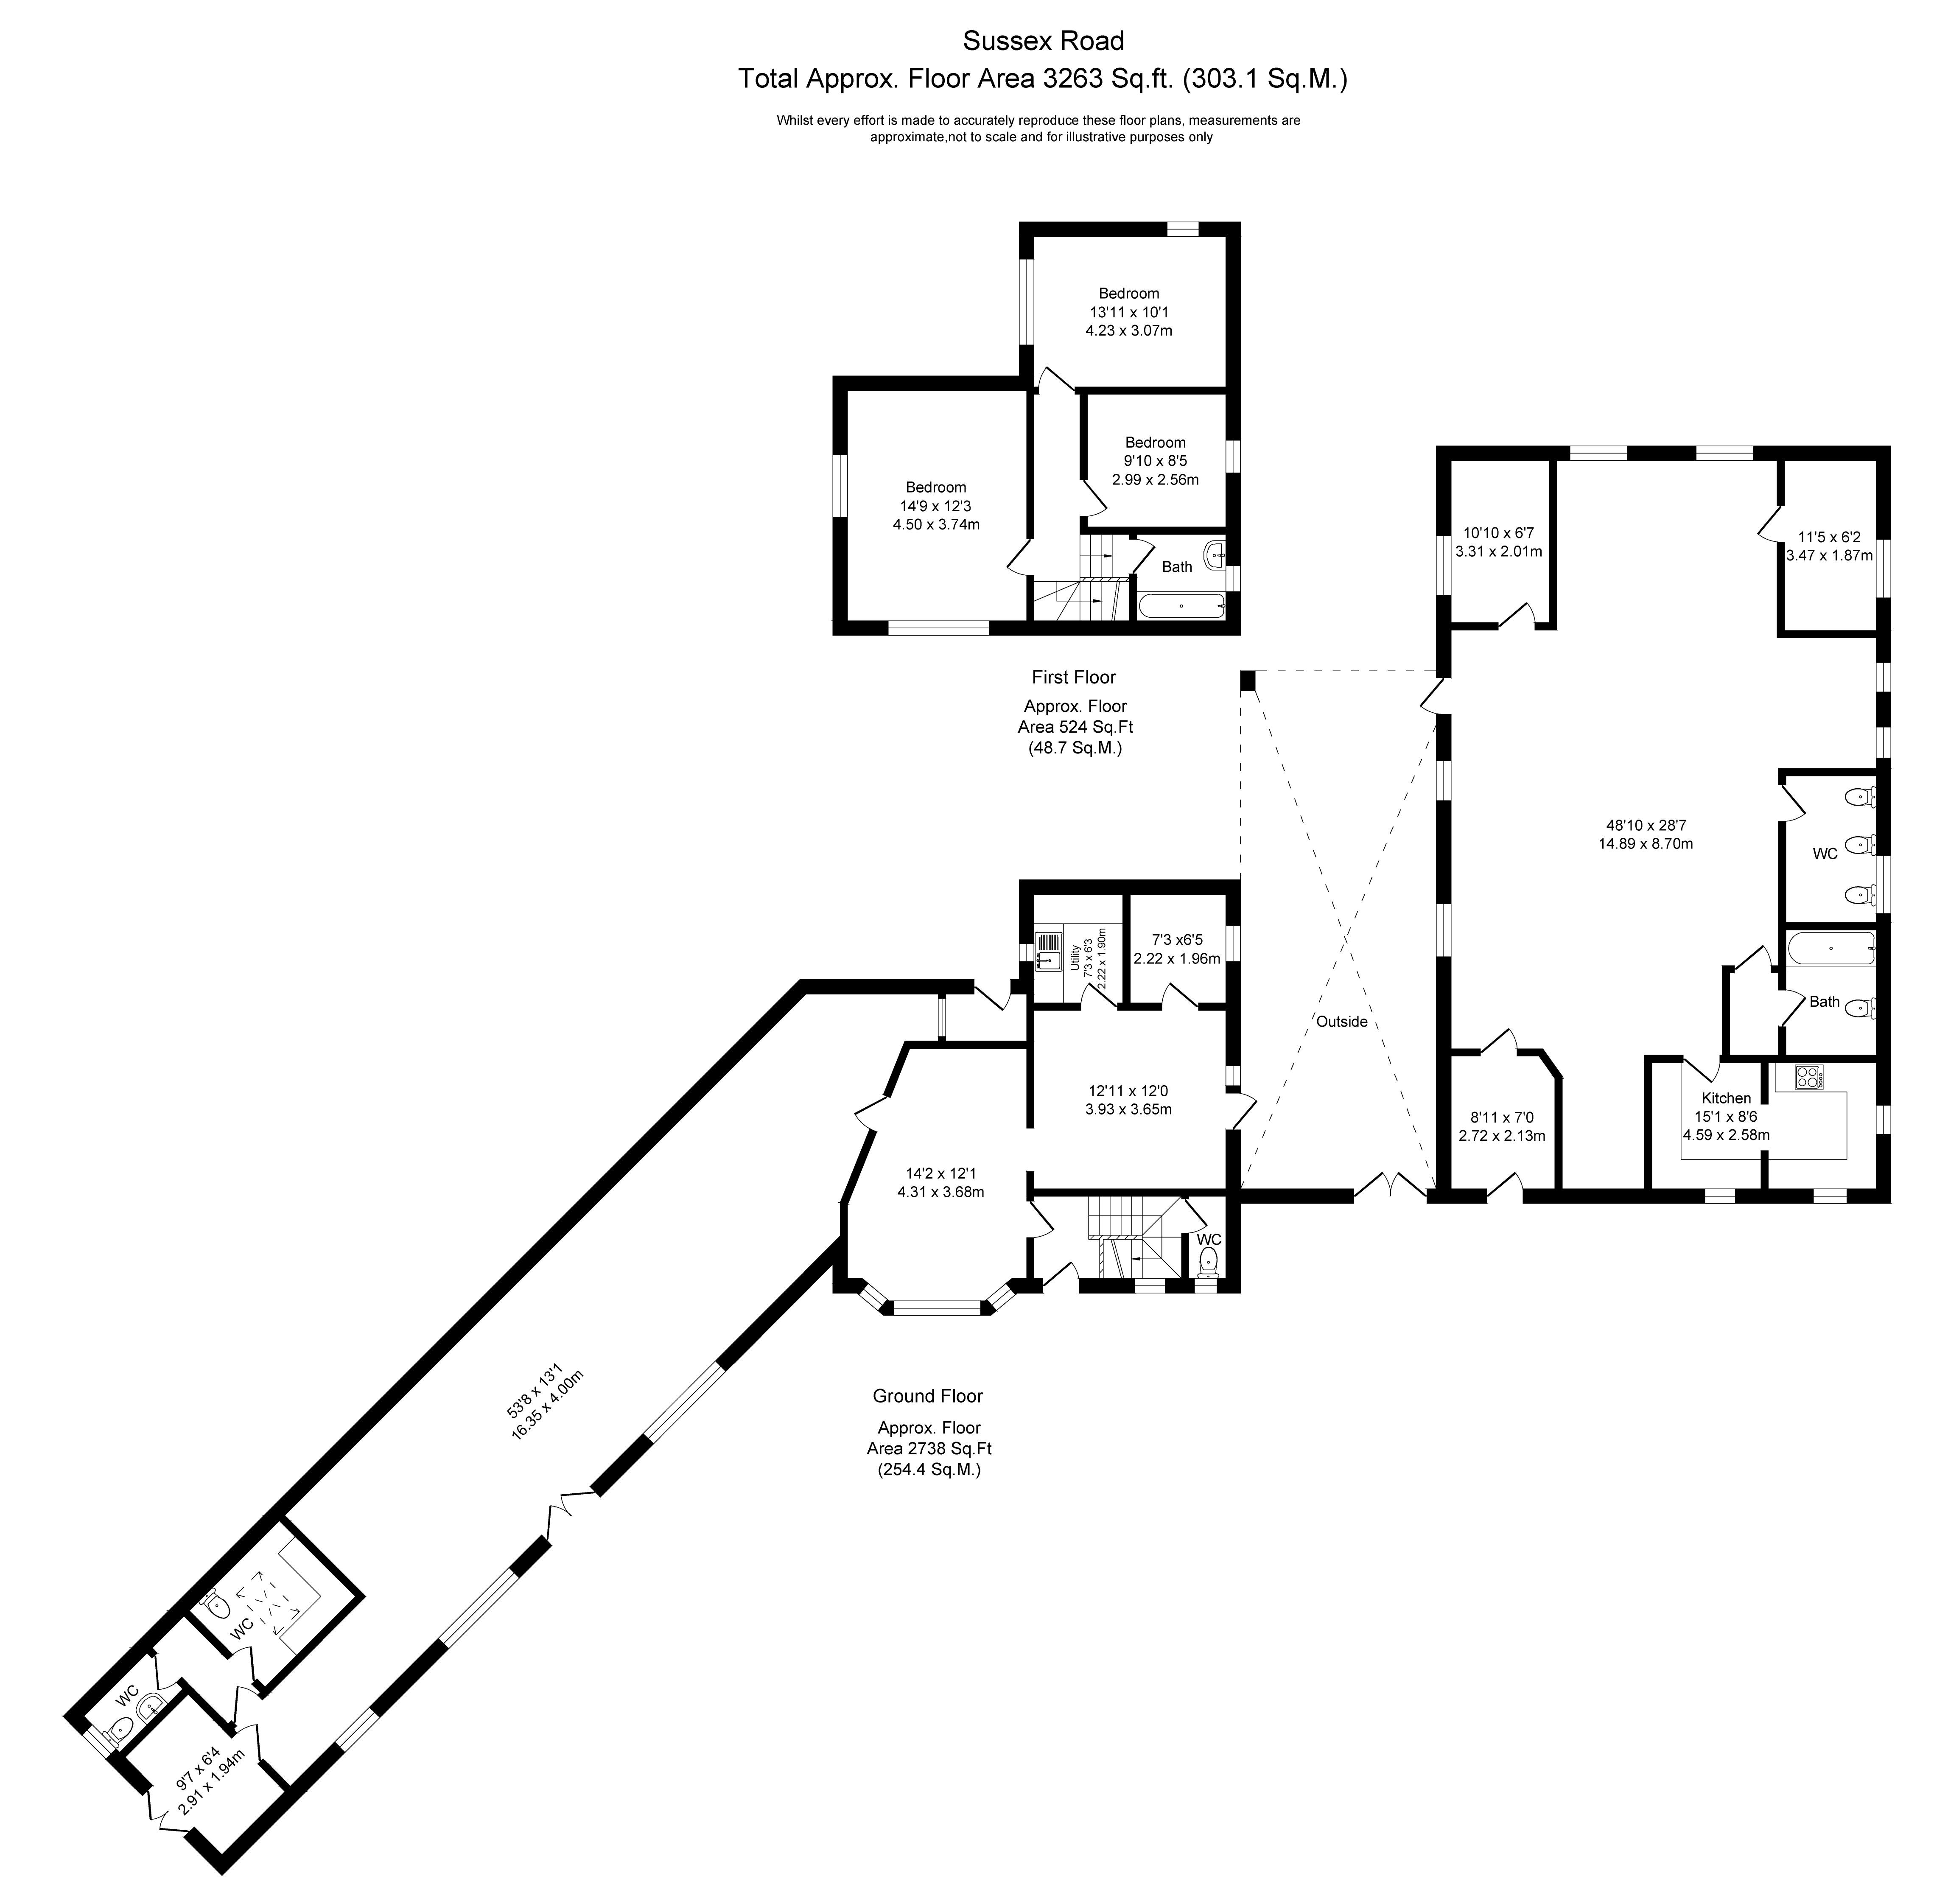 Floorplans For Sussex Road, Southport